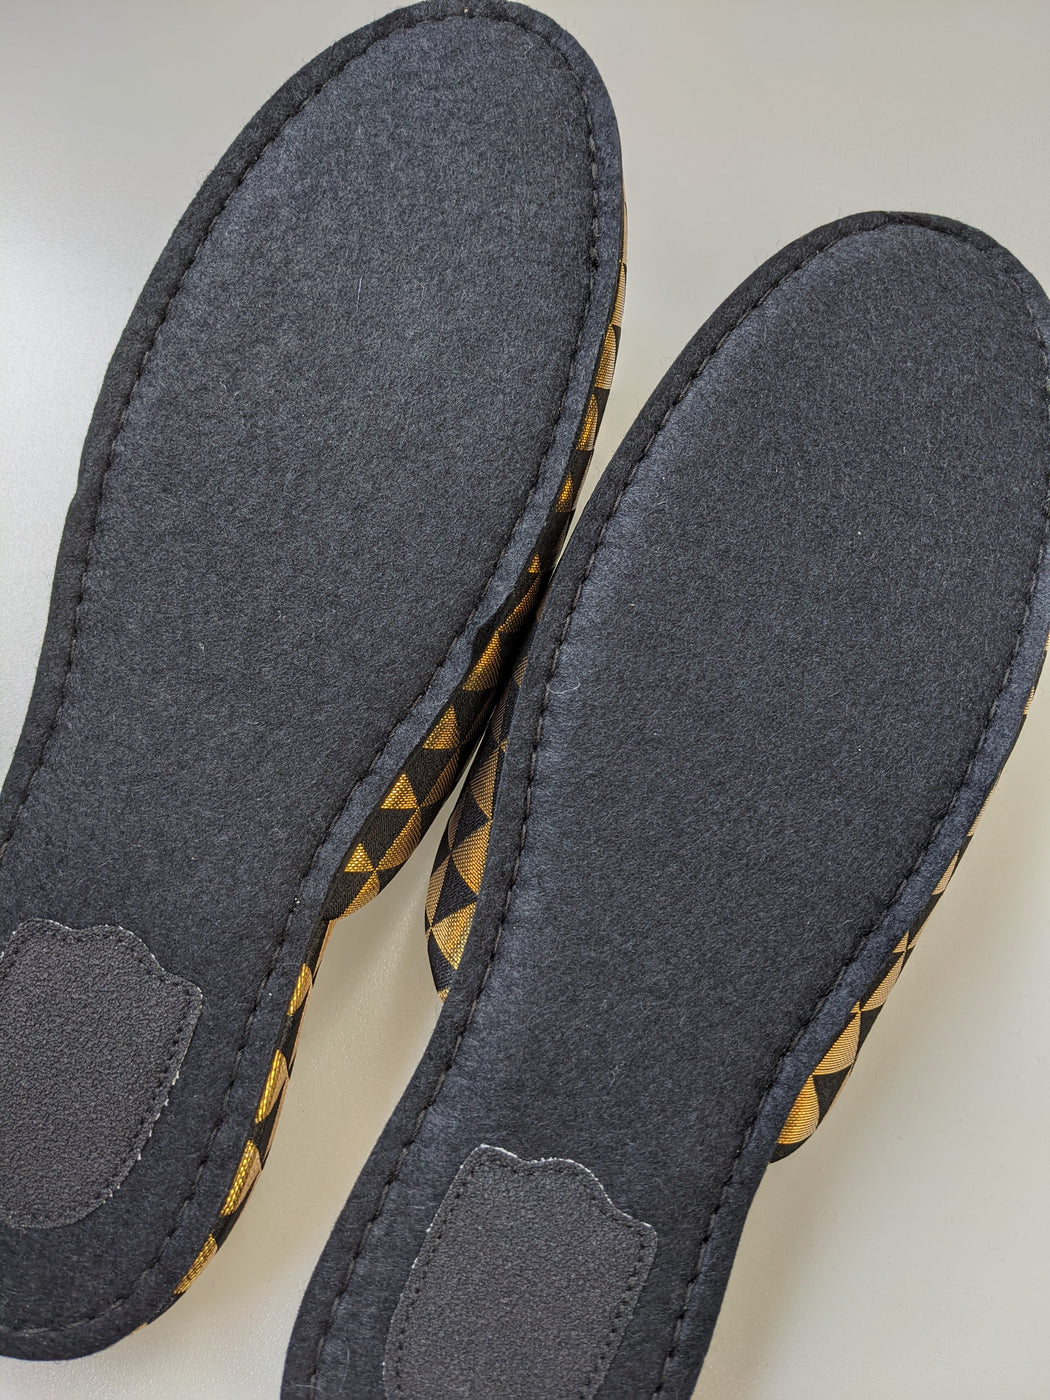 Shiny Triangle Slippers [Black × Gold]  / 3 Size / Black Wool Felt Soles 2020